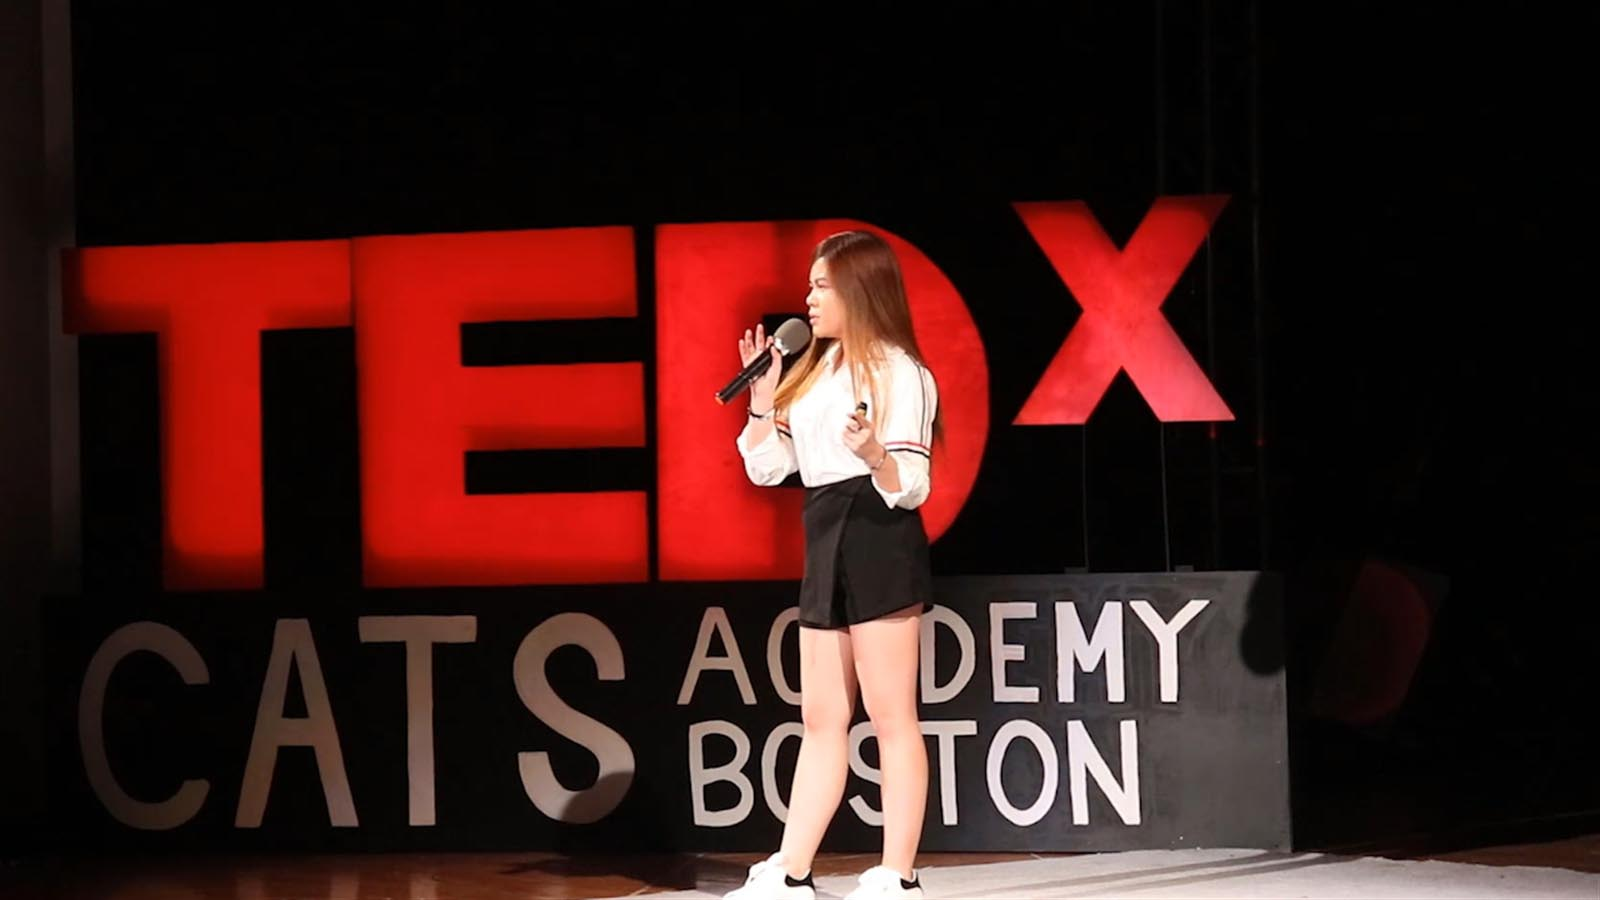 Introducing TEDx CATS Academy Boston – Inspiring talks from inspiring students